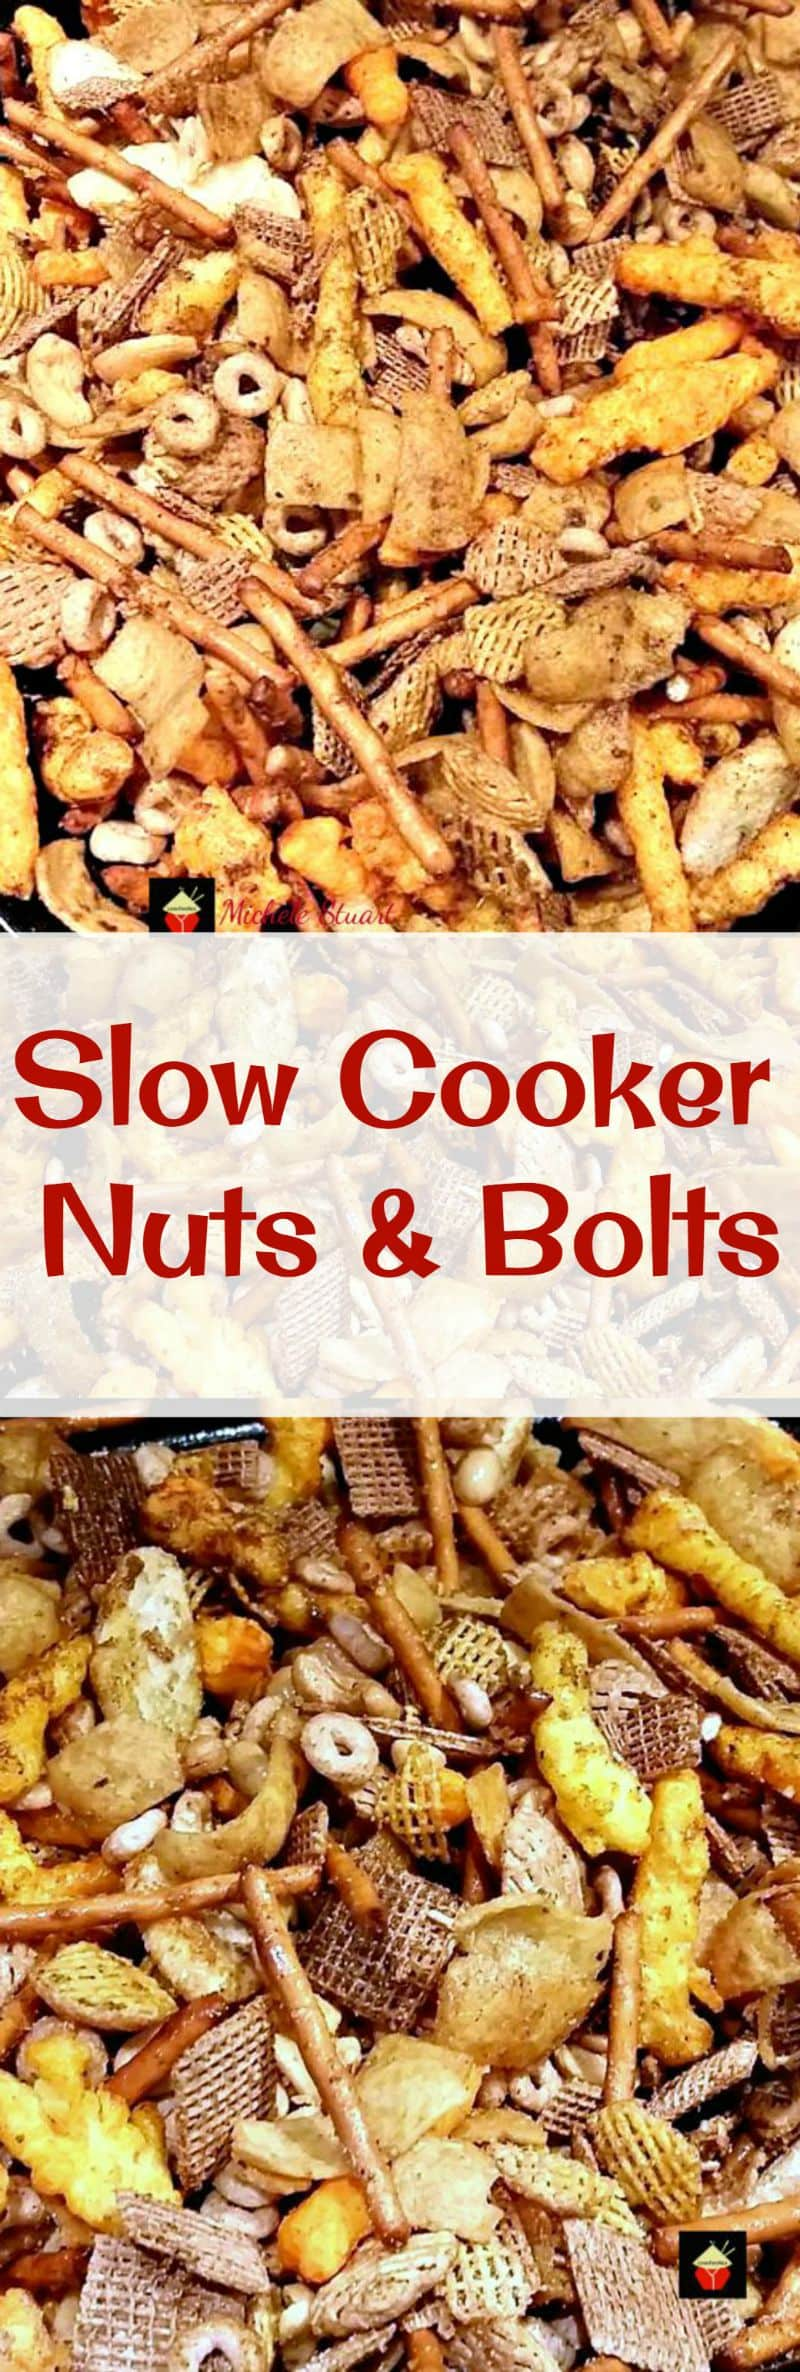 Slow Cooker Nuts & Bolts. A very easy recipe and so flexible, you can adjust according to your taste, and add different seasonings and ingredients. Lots of suggestions in the recipe for you to enjoy!